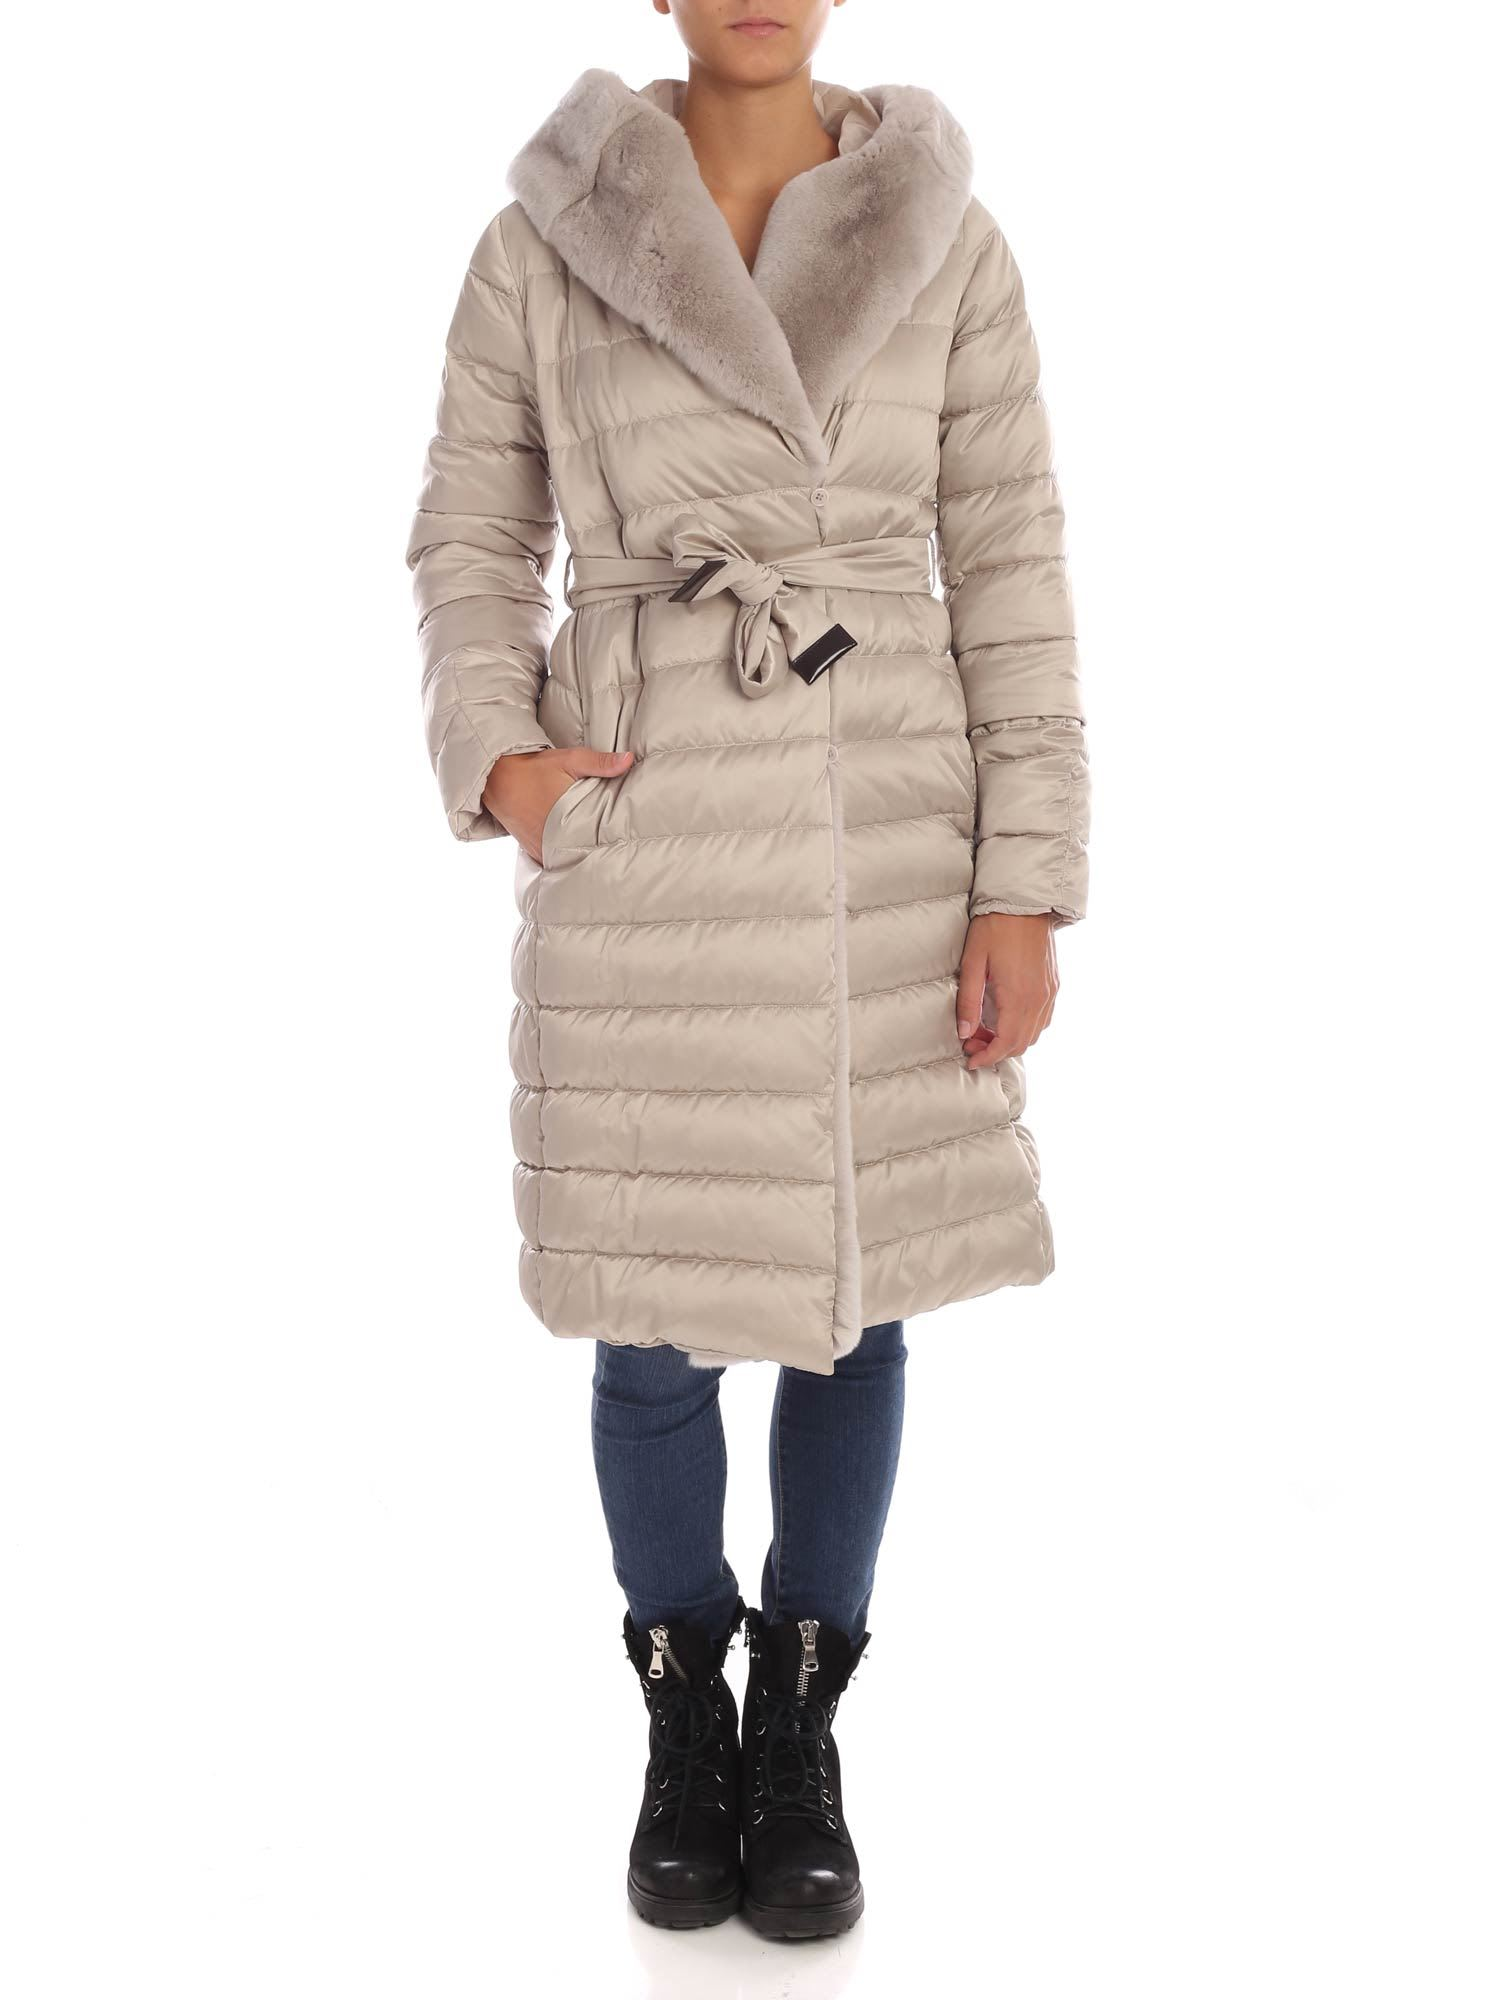 Max Mara – Noverex Down Jacket